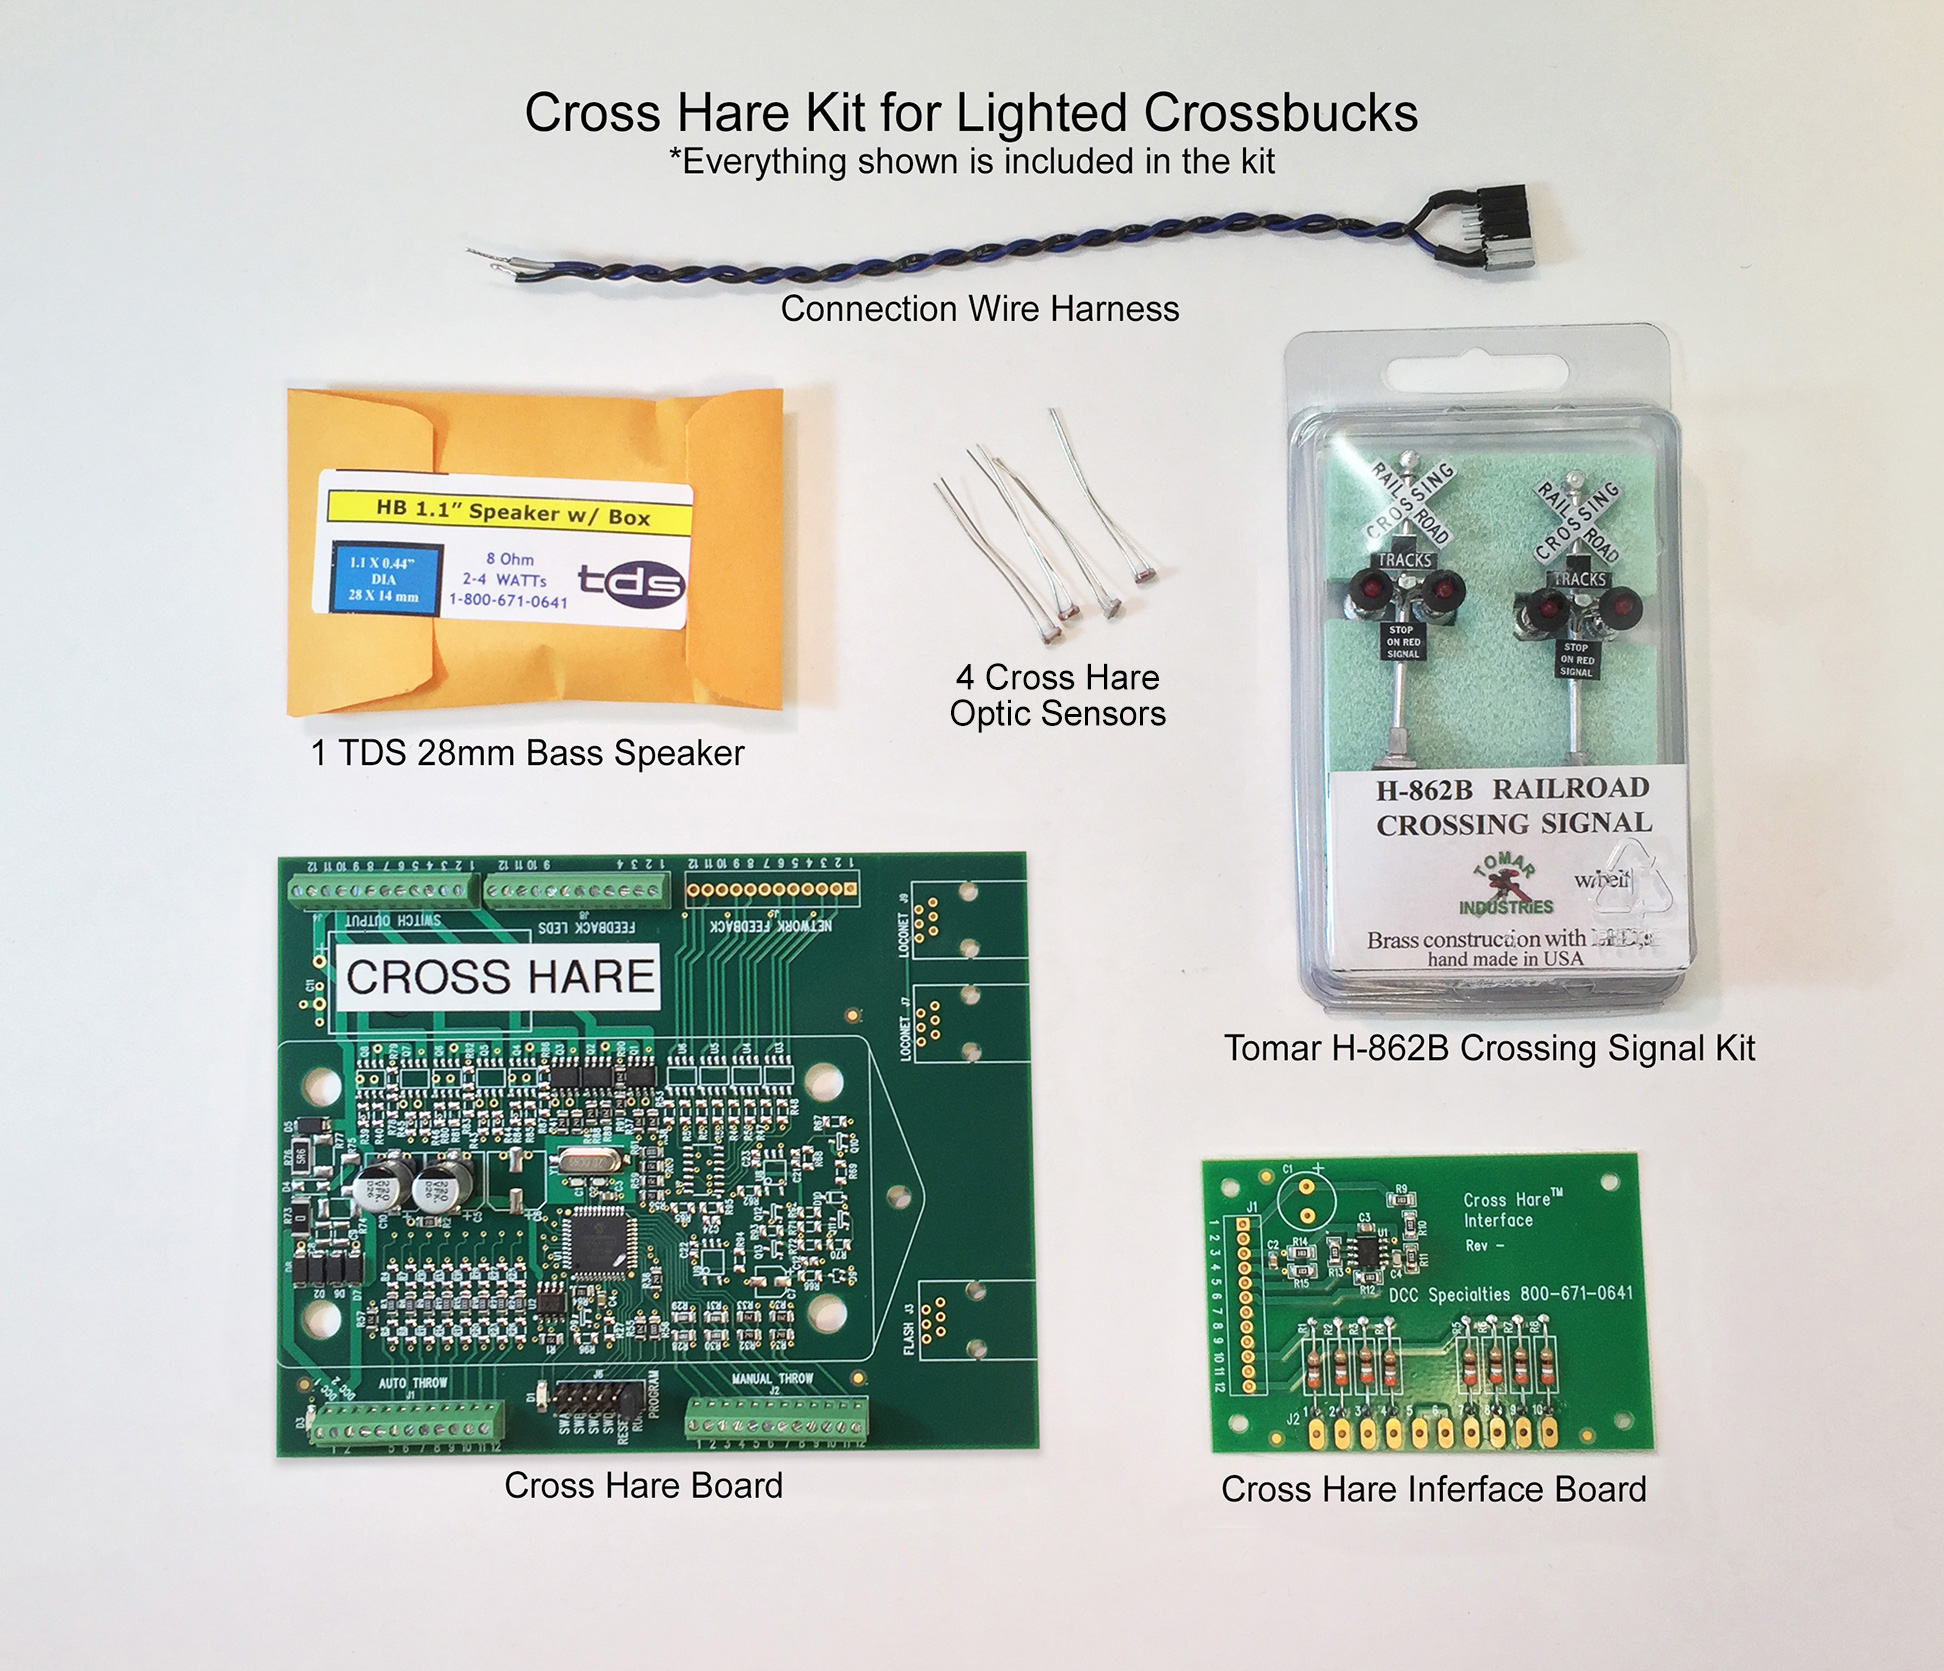 cross-hare-lighted-crossbucks-contents